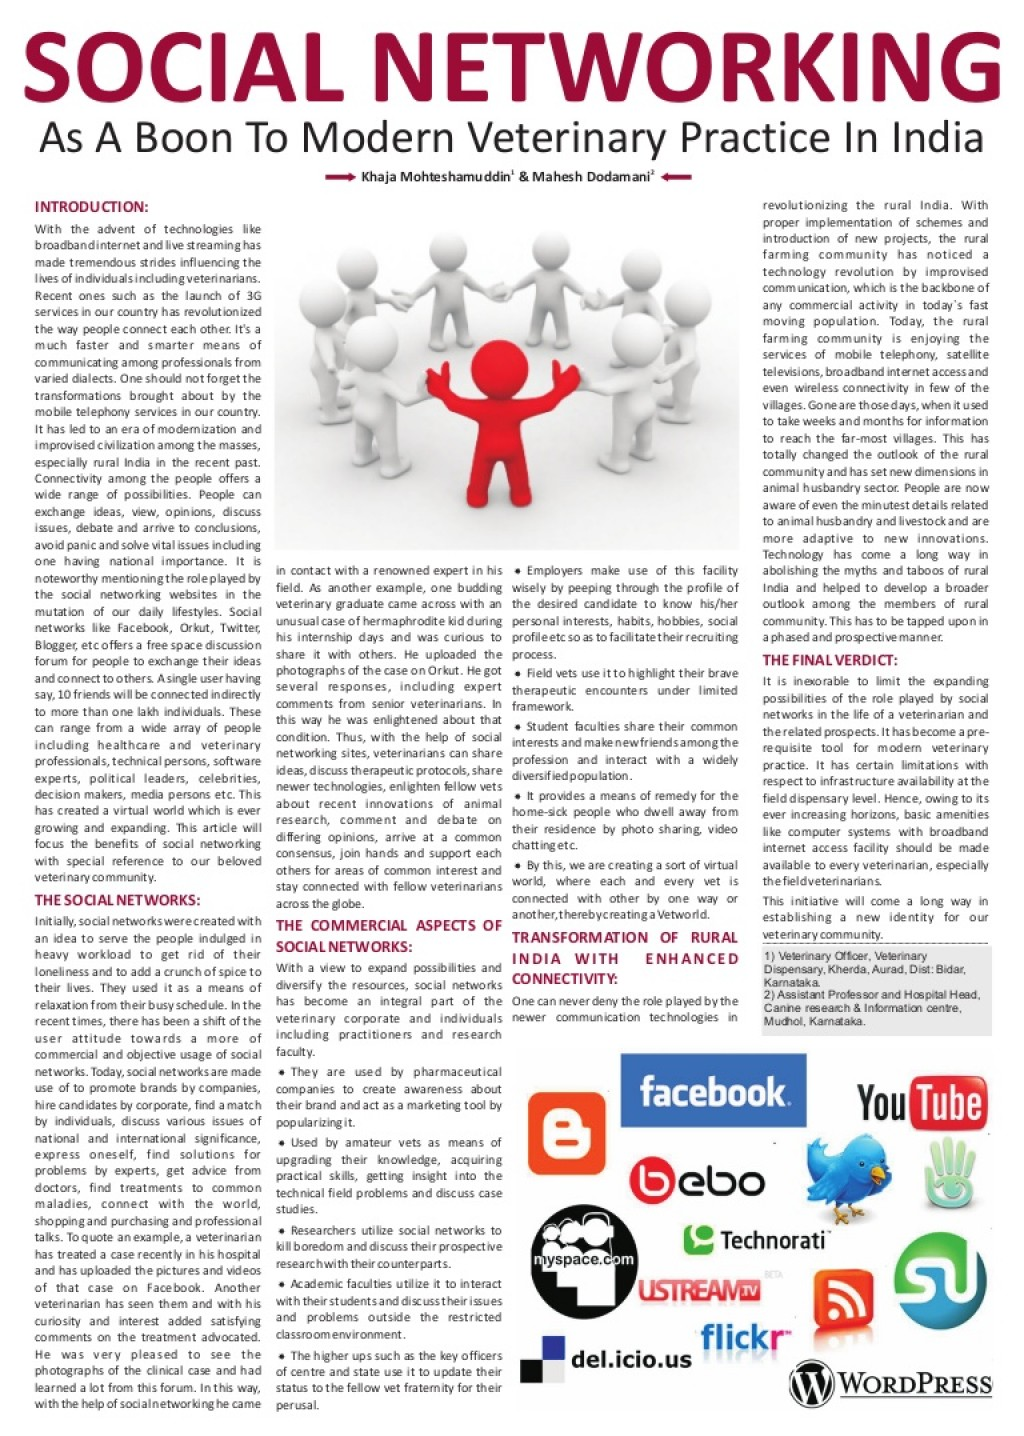 015 Essay Examplesocialnetworking Phpapp02 Thumbnail Pros And Cons Of Social Media Fantastic Pdf Large